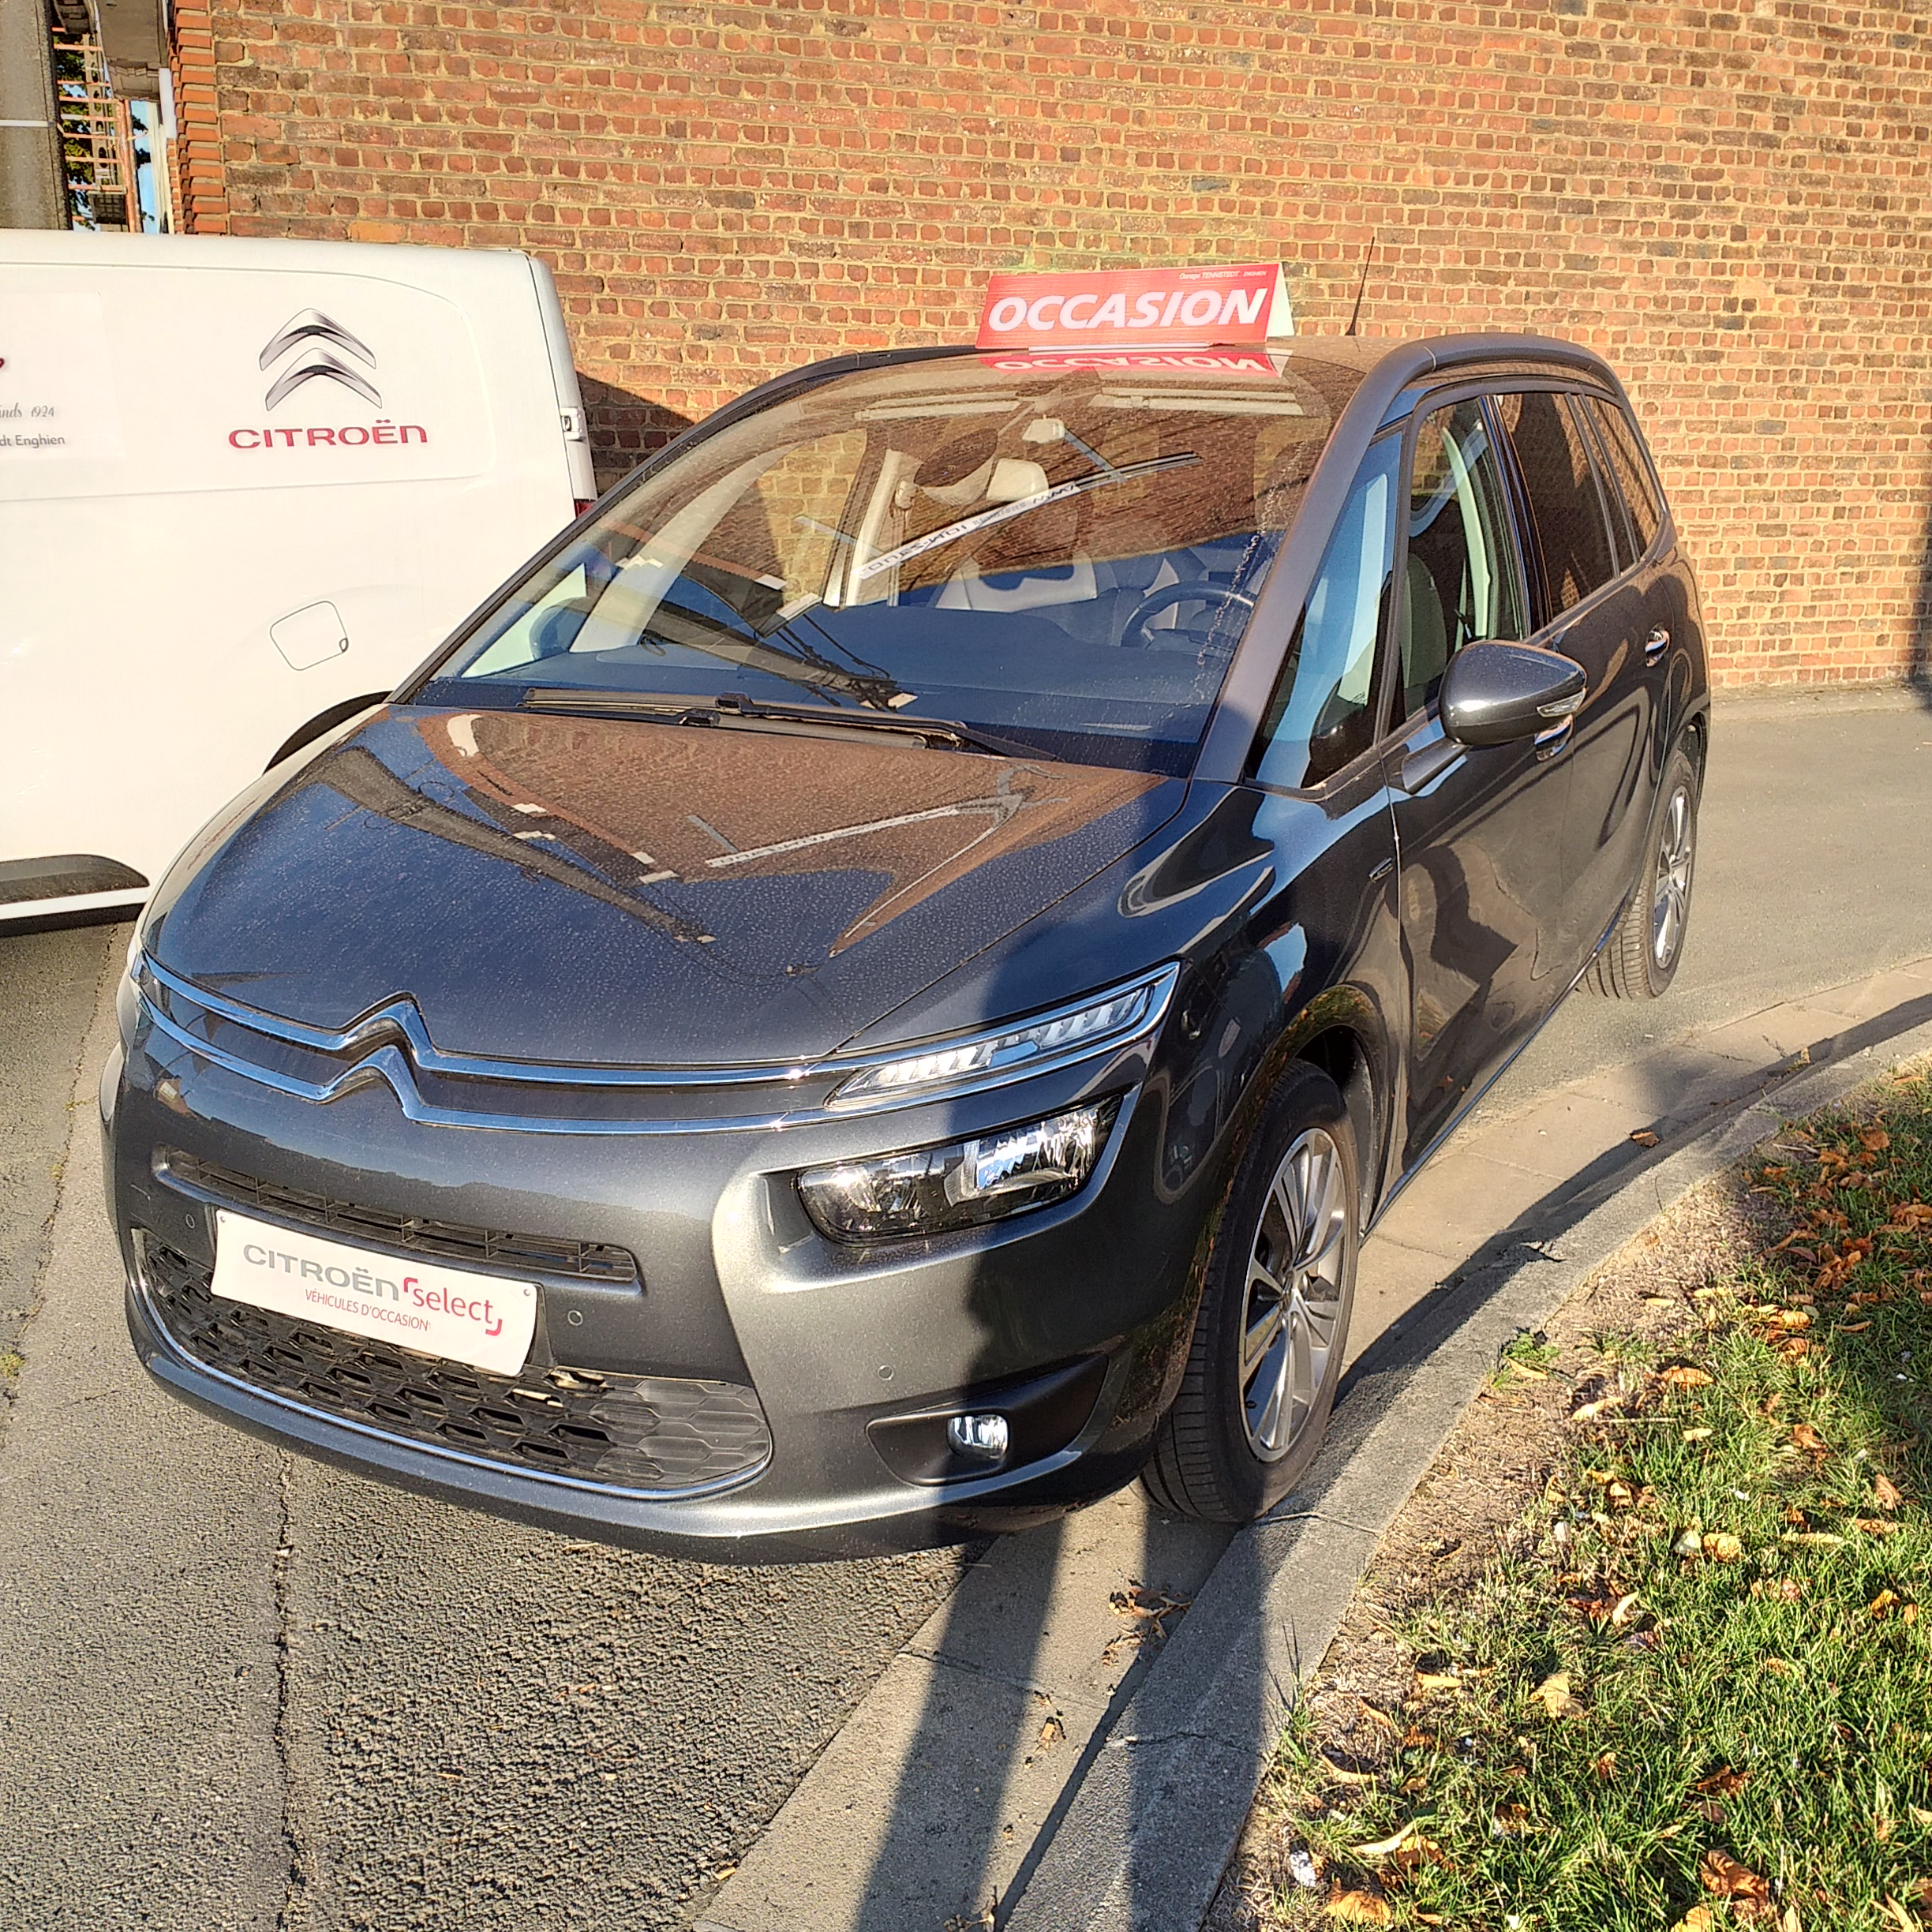 Gd C4 Picasso 20HDI135 Exclusive